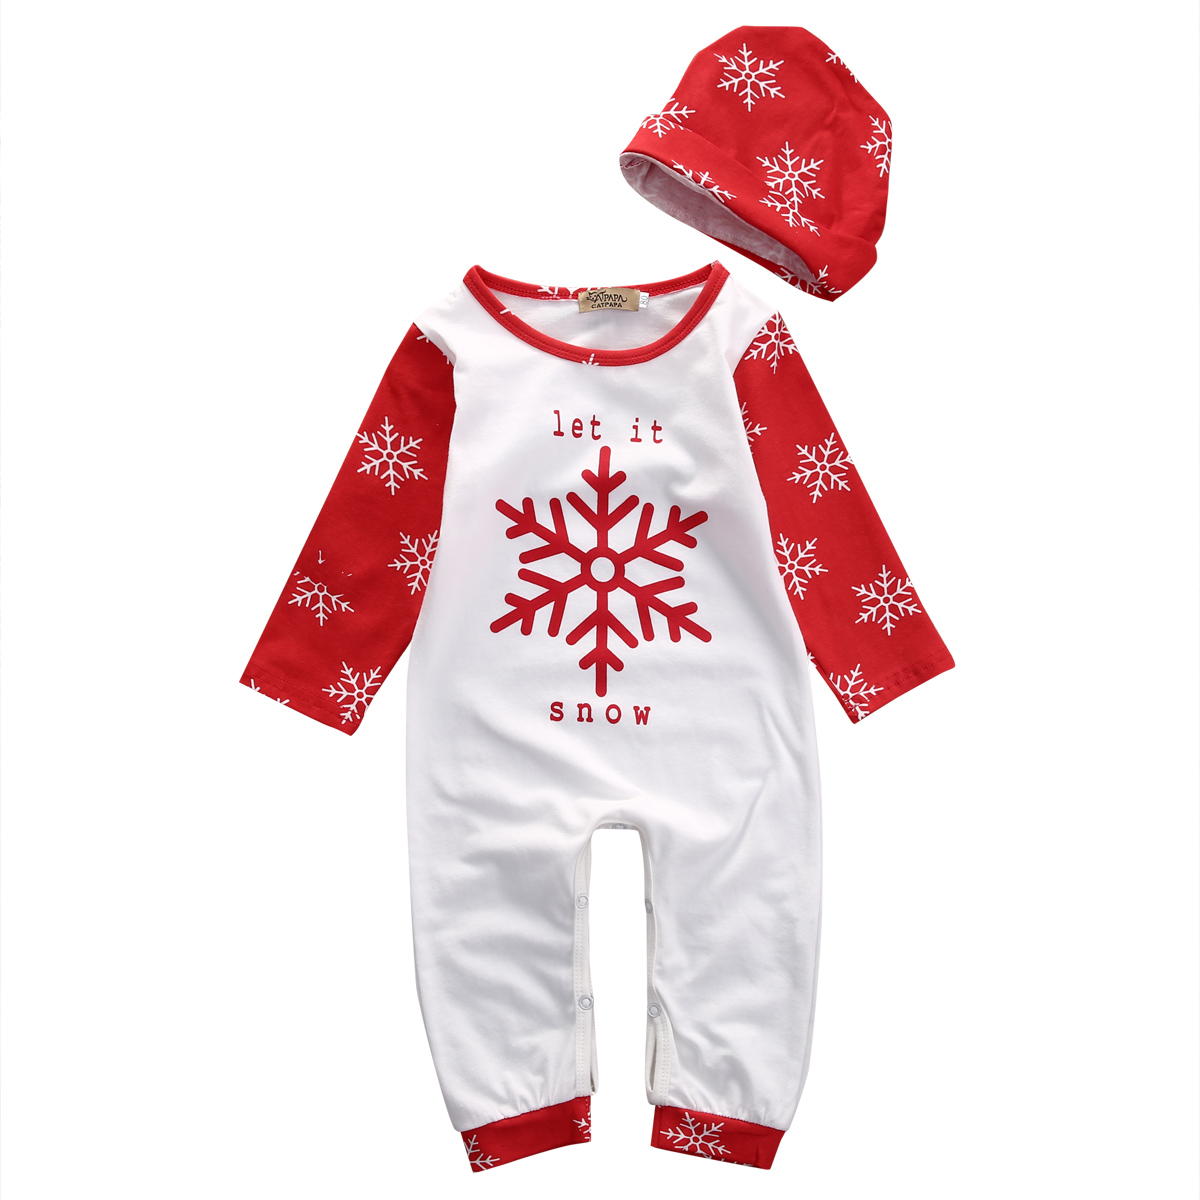 XMAS Kids Newborn Toddler Baby Boys Girls Snowflake Romper Jumpsuit Outfits Hat Long Sleeve Romper Christmas Clothes Set infant toddler baby kids boys girls pocket jumpsuit long sleeve rompers hats kids warm outfits set 0 24m